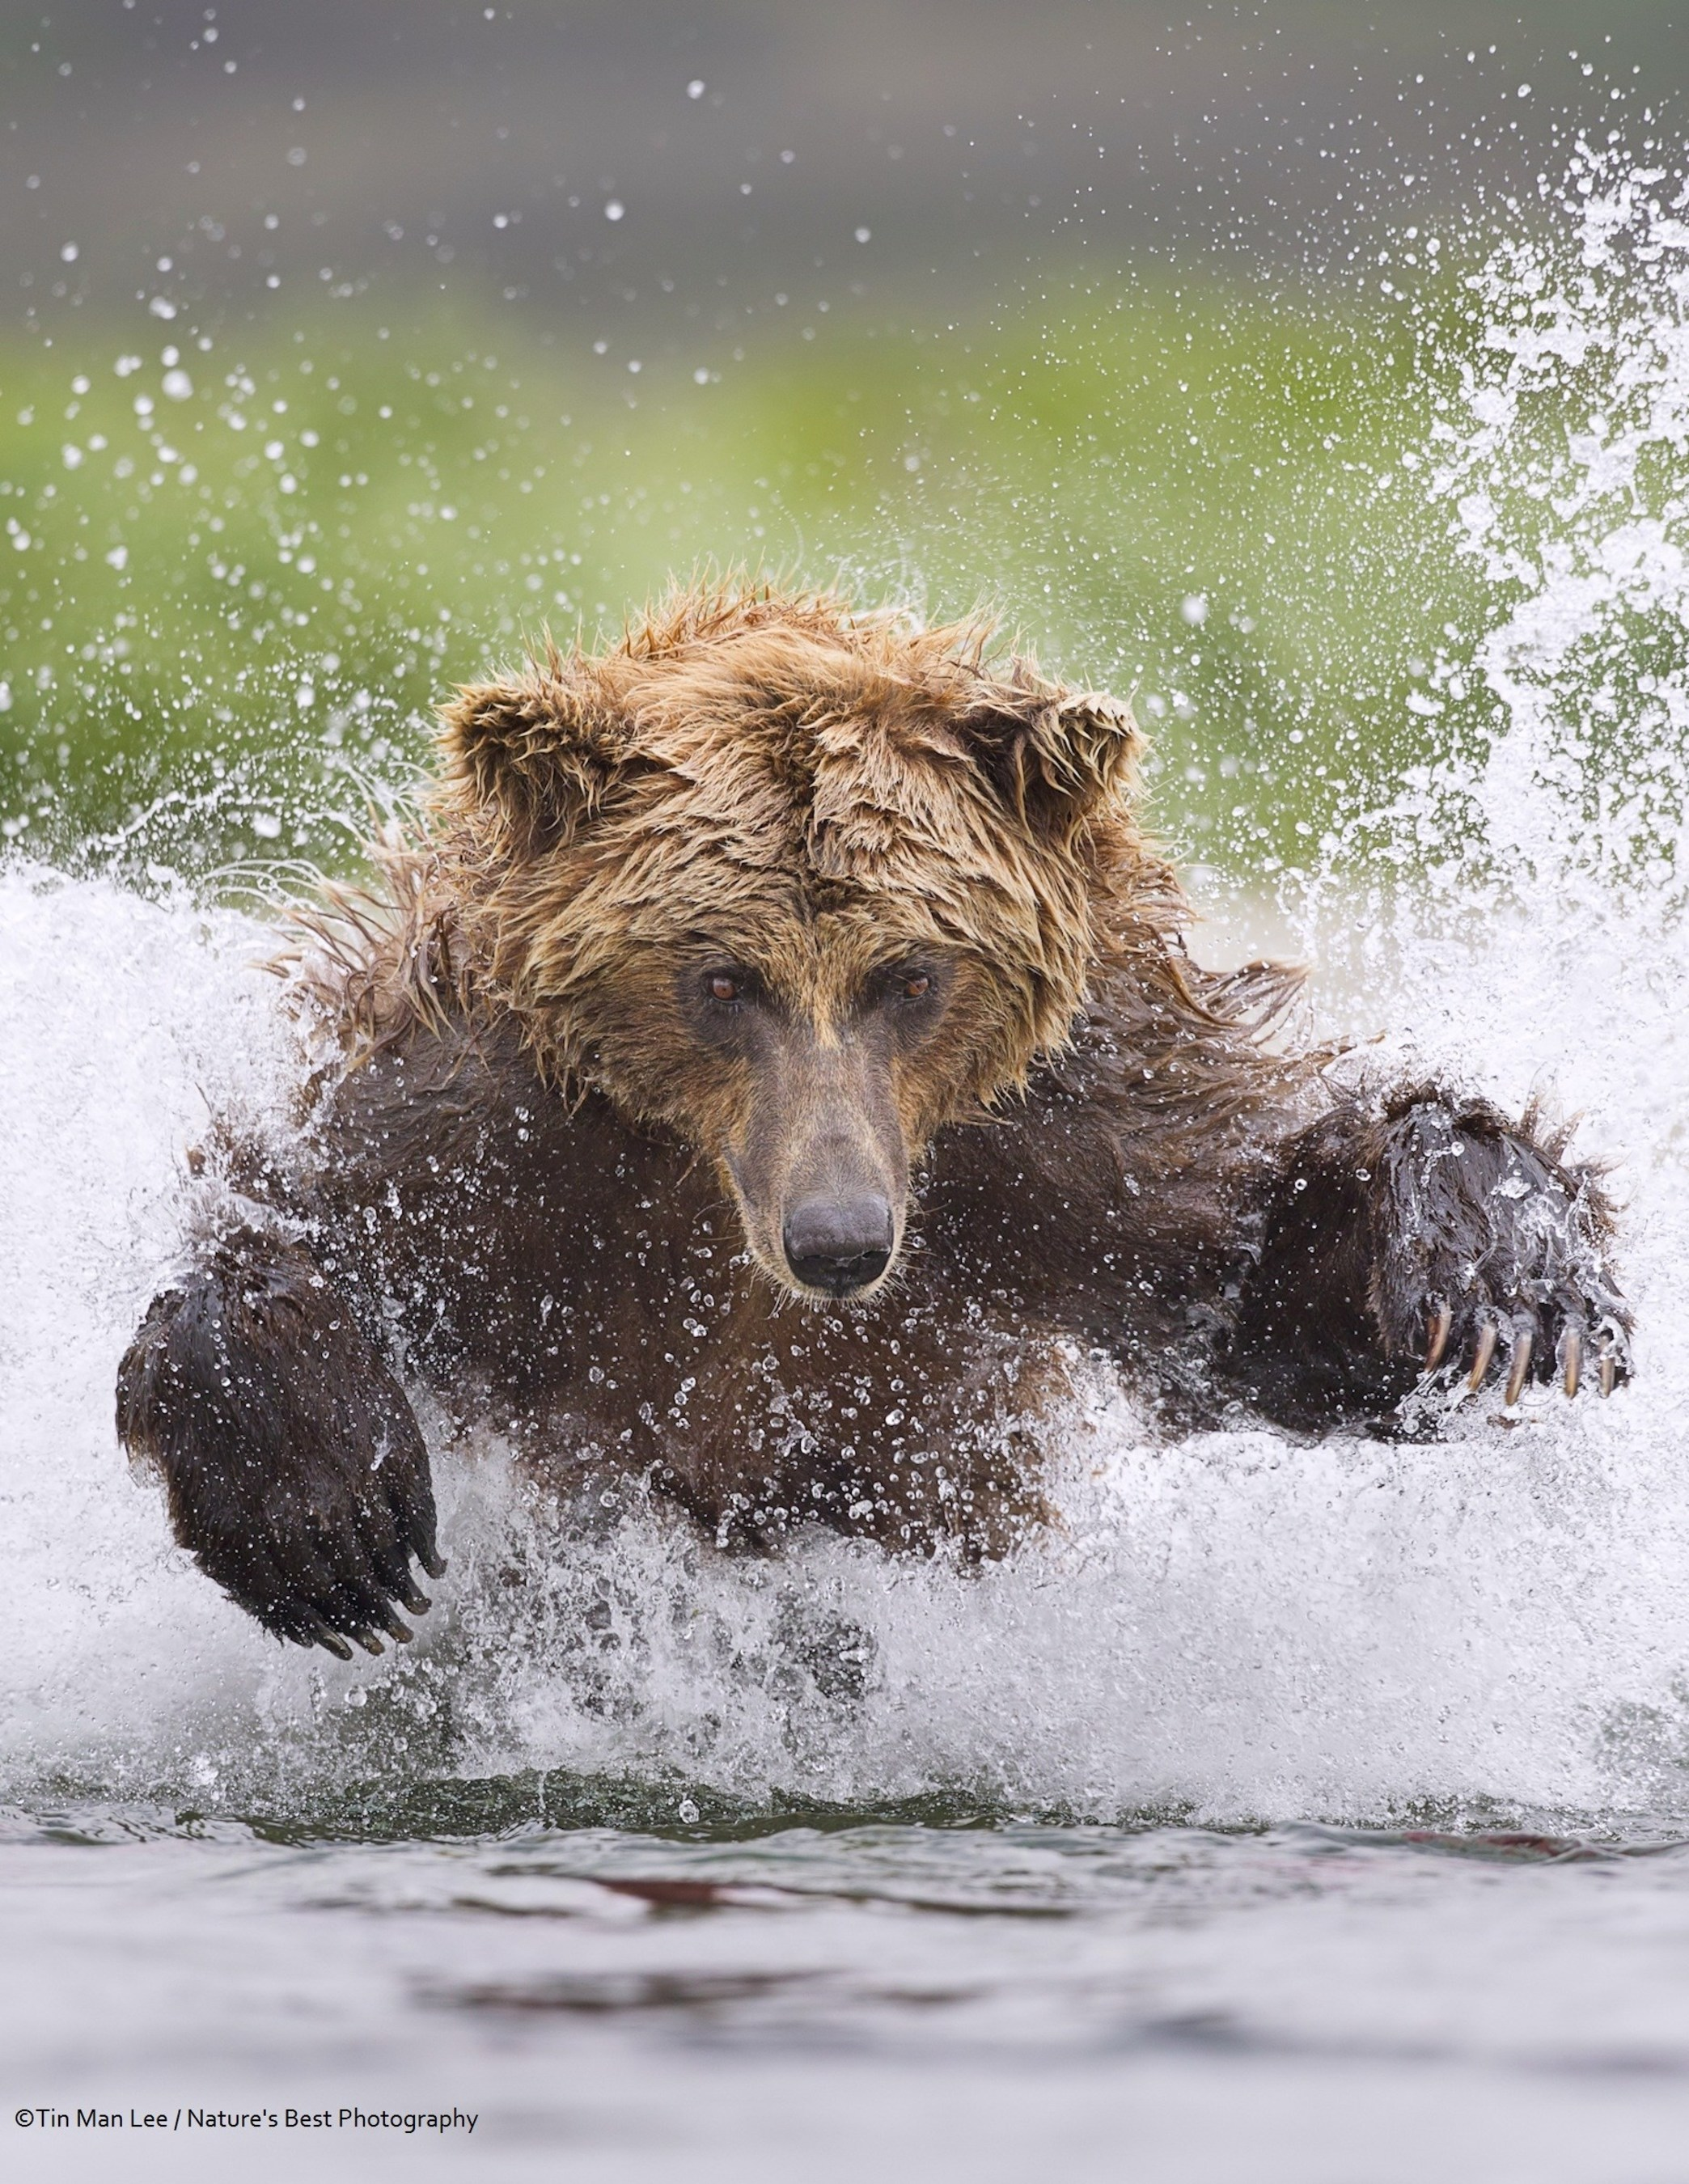 Epson Sponsors Nature's Best Photography Awards For Third